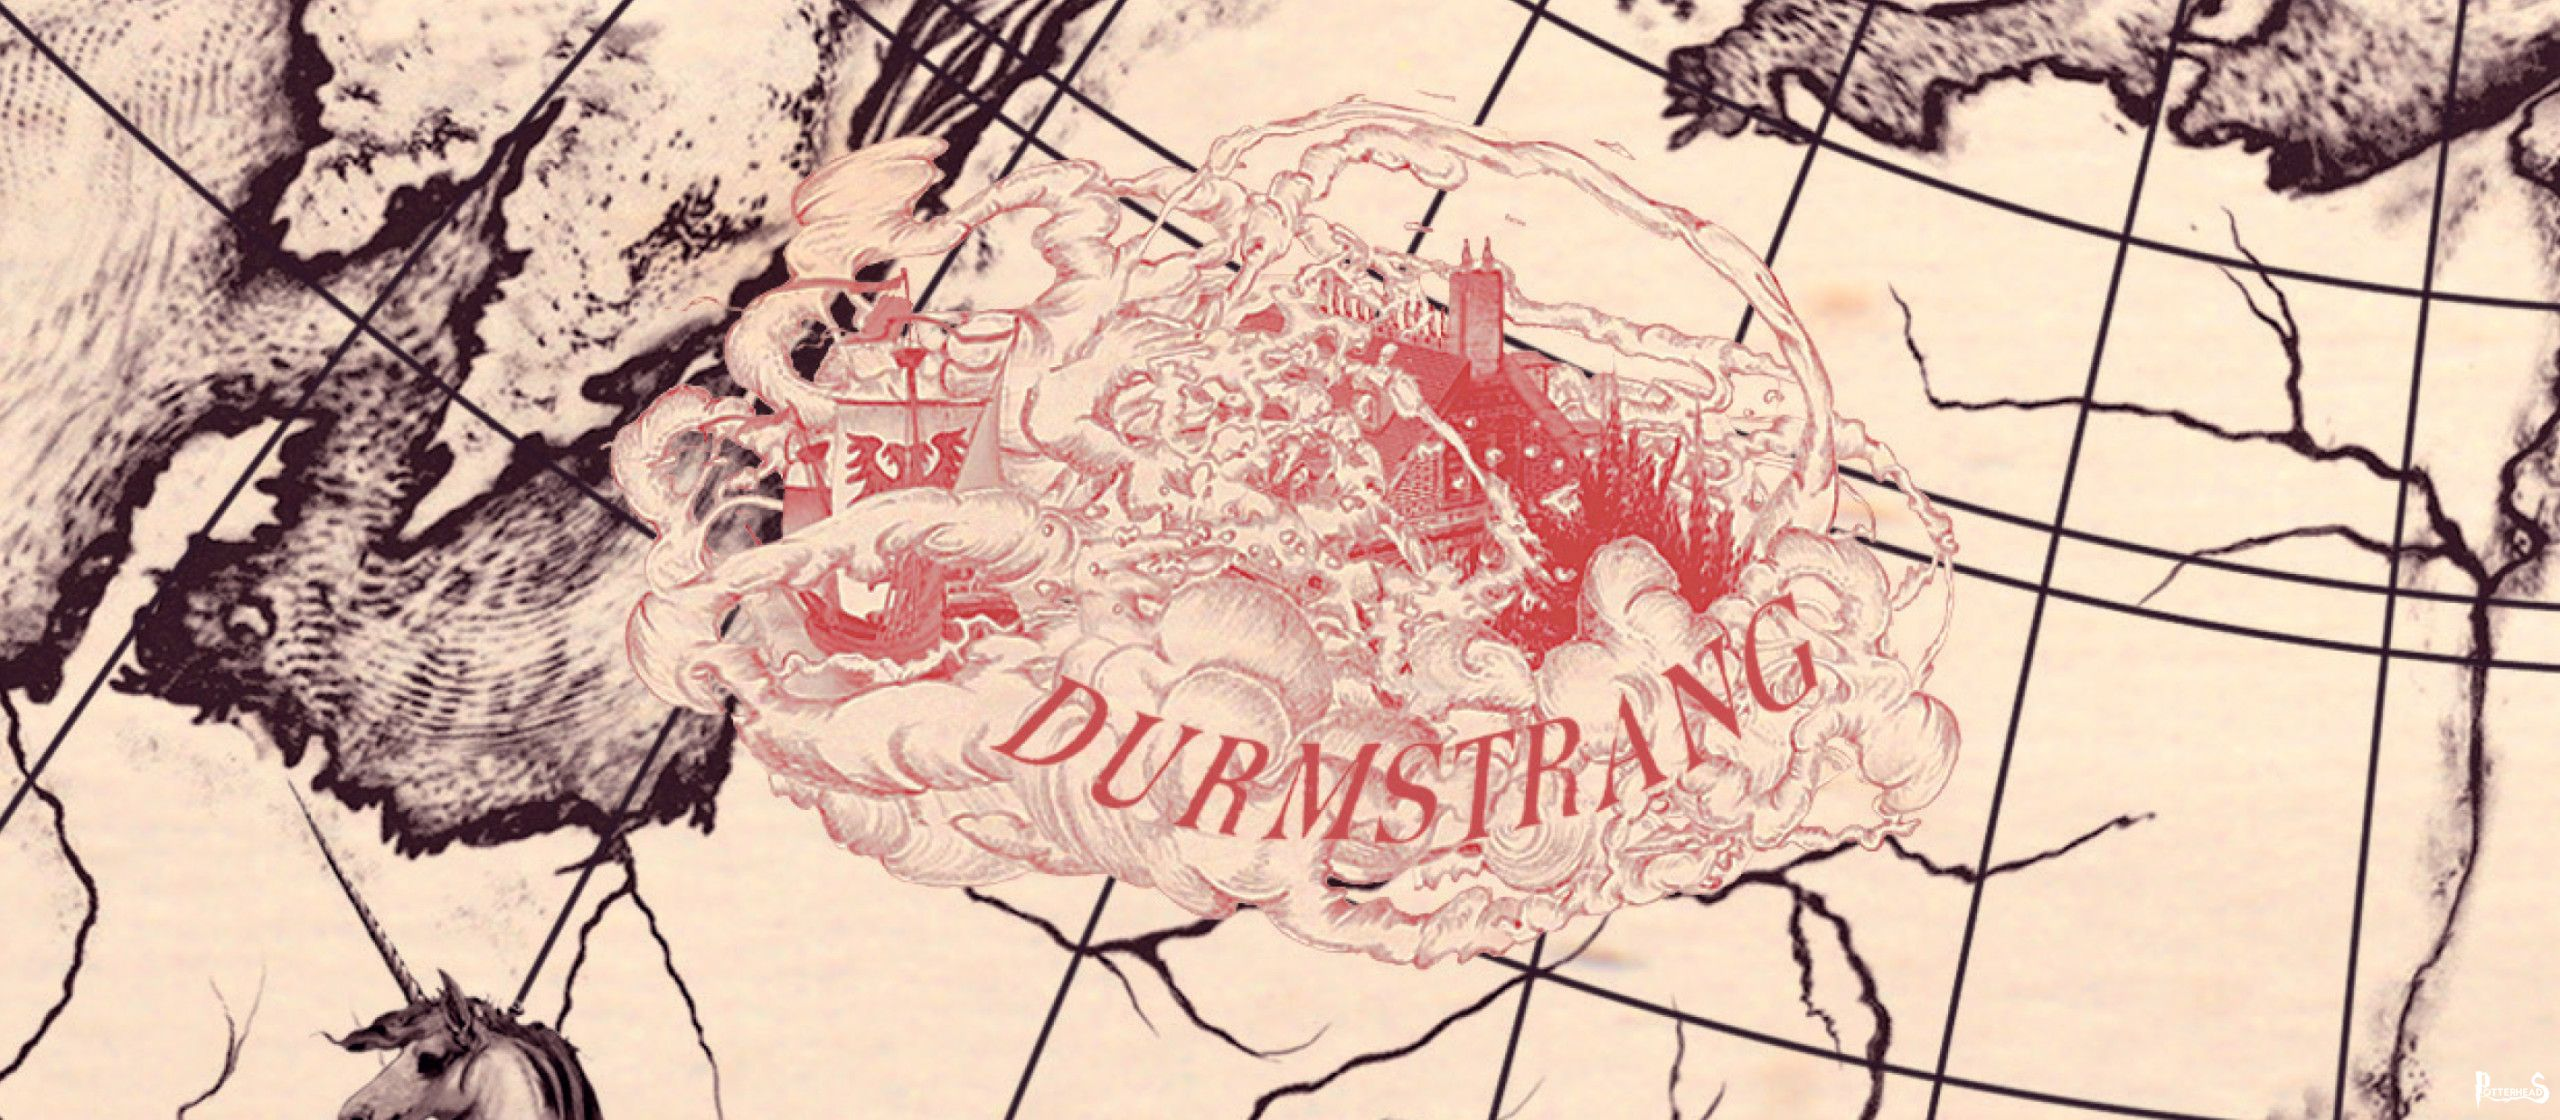 Durmstrang Harry Potter - PotterPedia.it